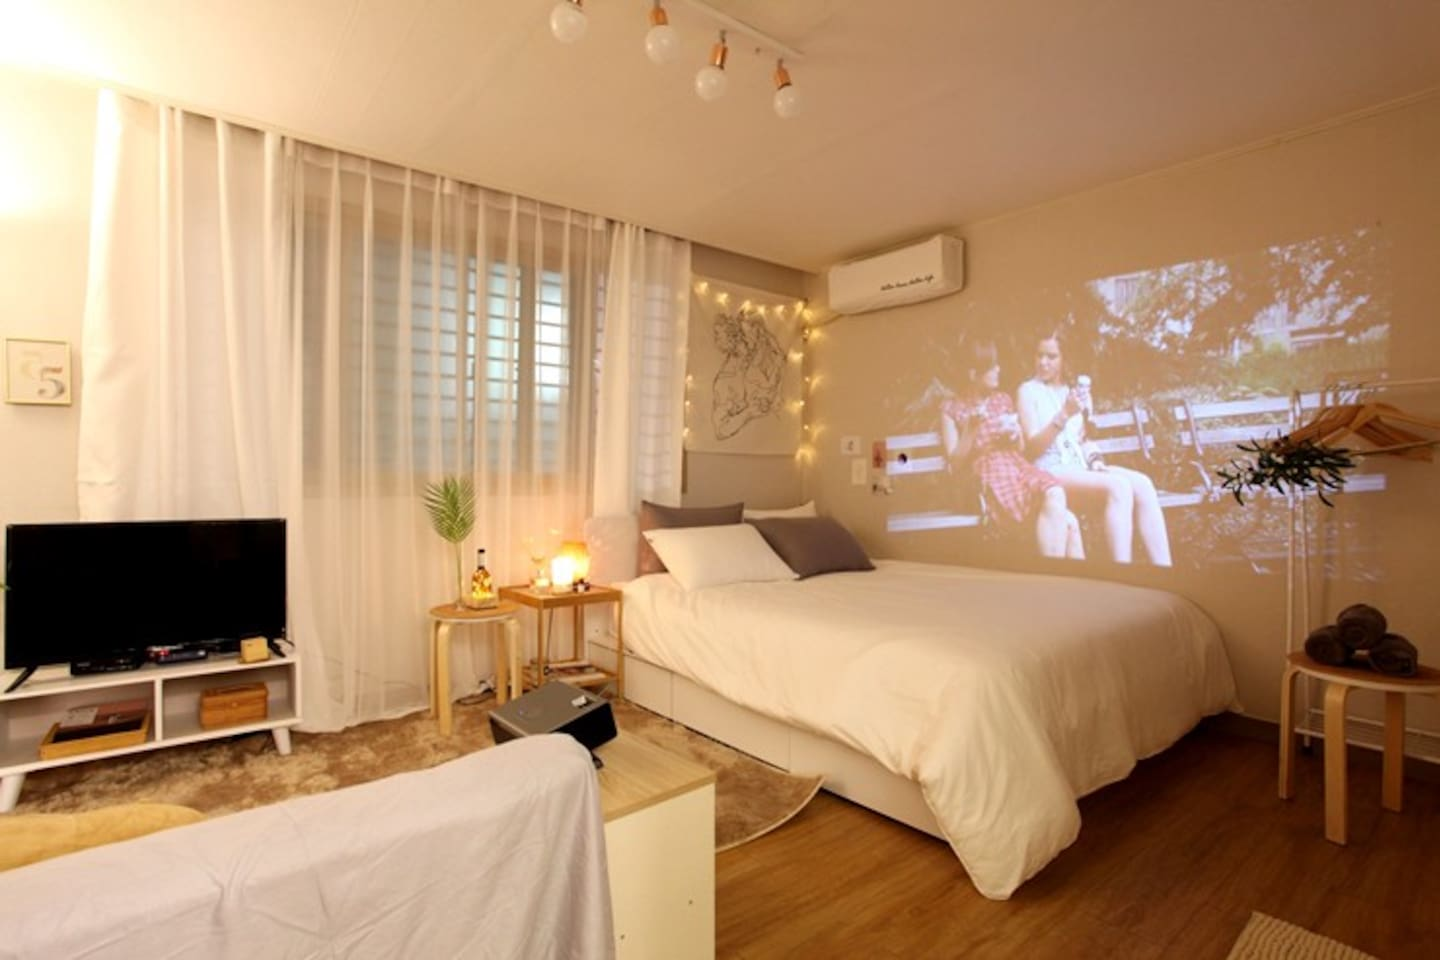 Queen bed and Beam projector and TV